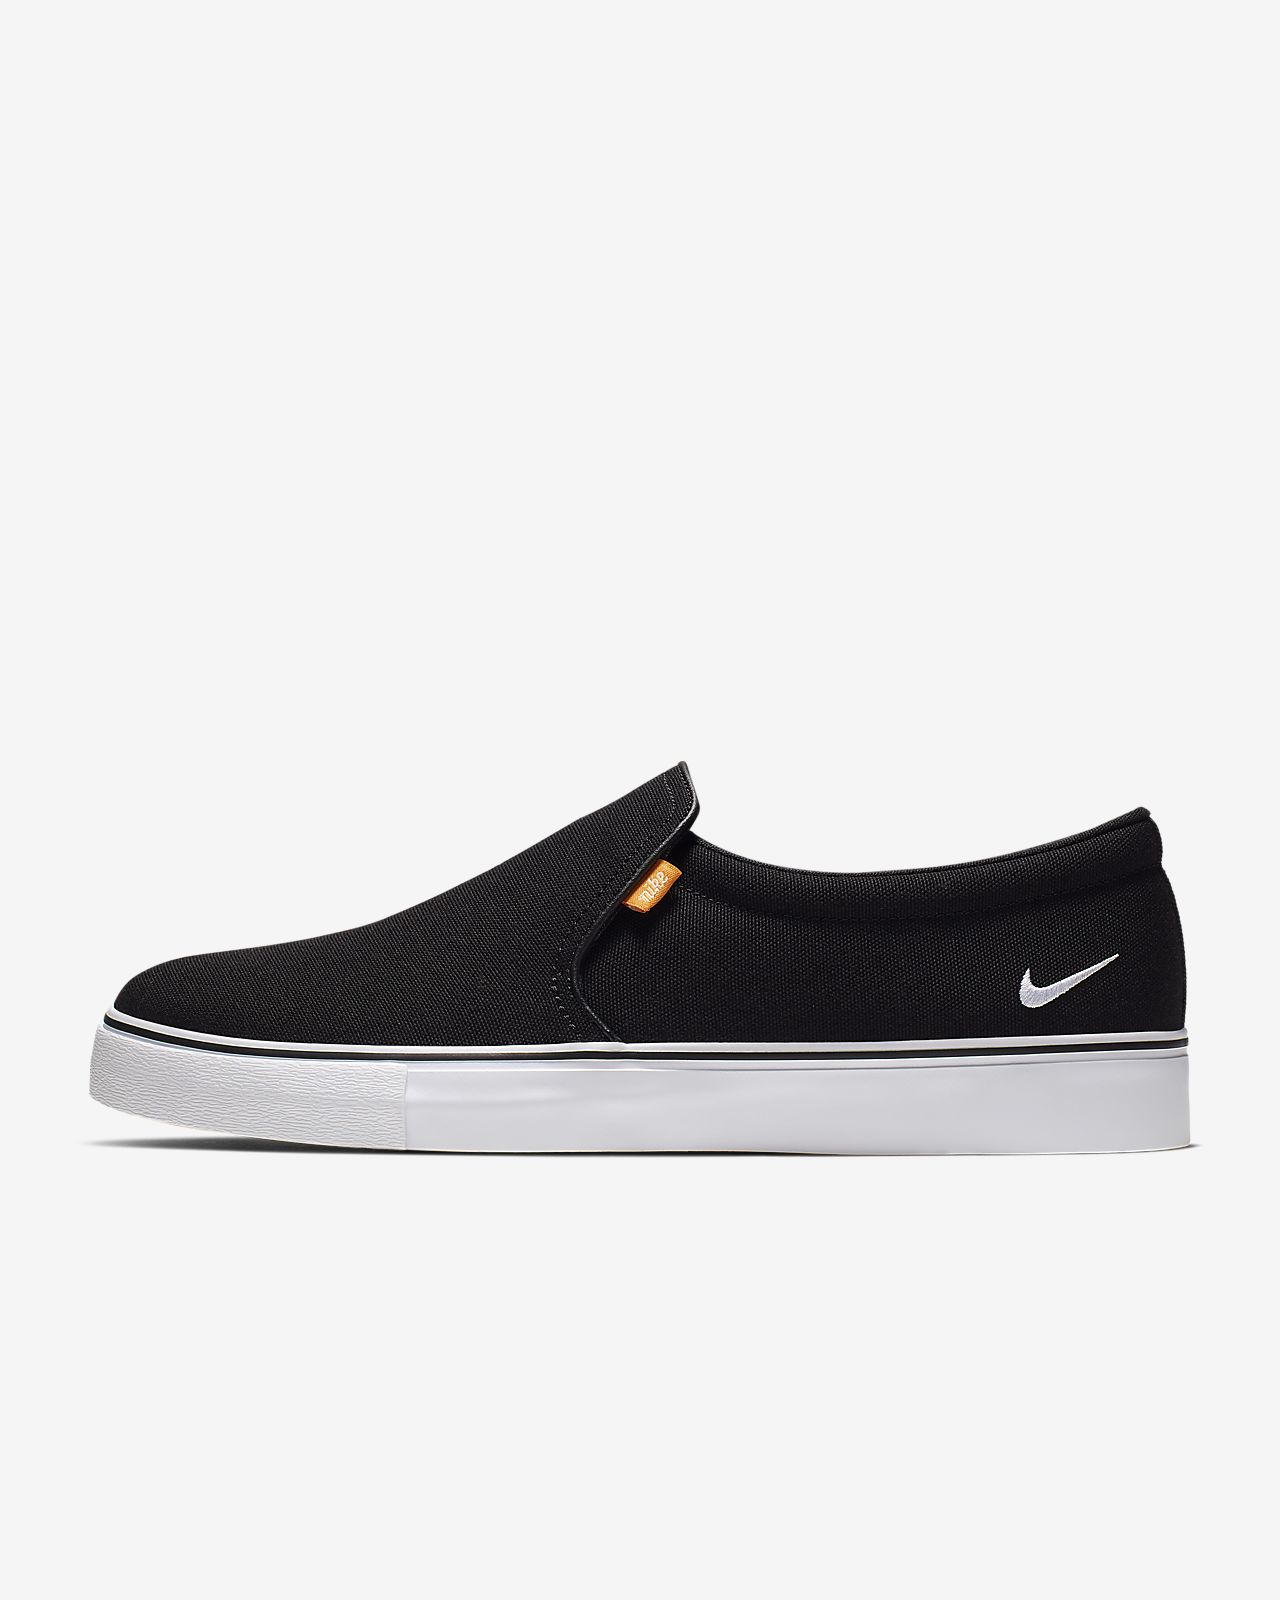 4f29233a59e NikeCourt Royale AC Men's Slip-On Shoe. Nike.com SG